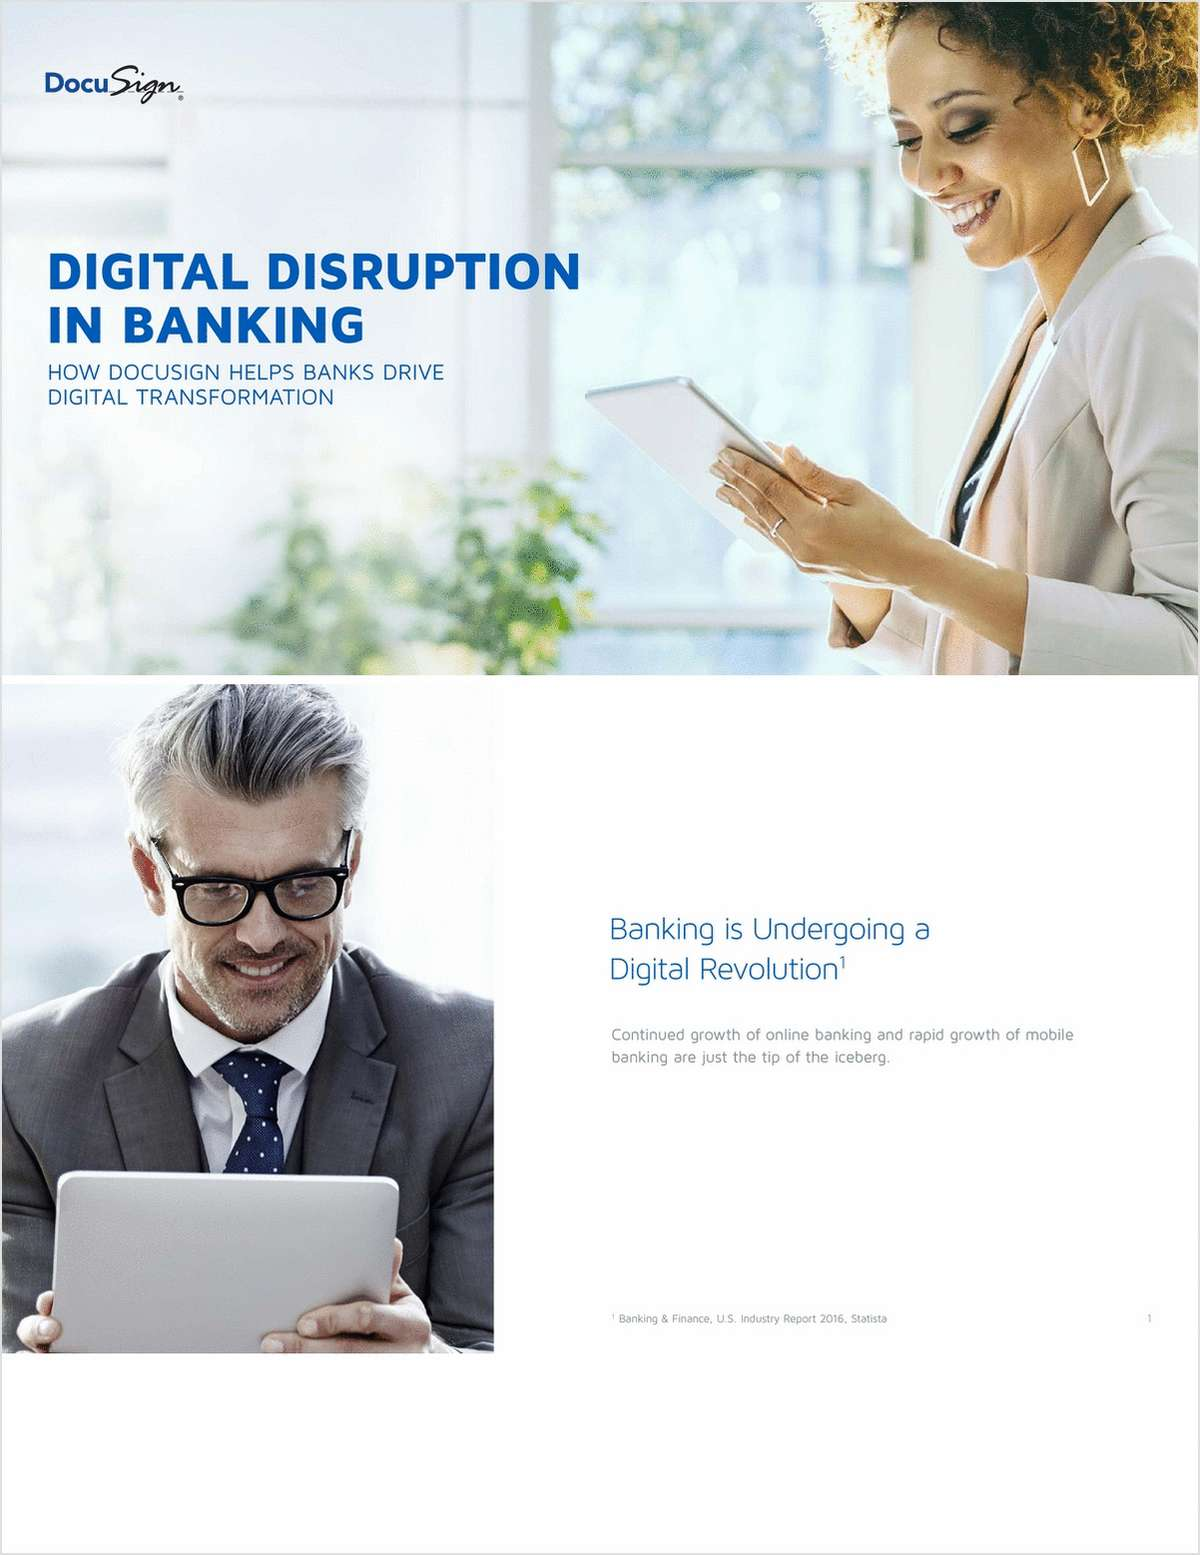 Digital Disruption in Banking: How Digital Transformation Helps Financial Institutions Thrive